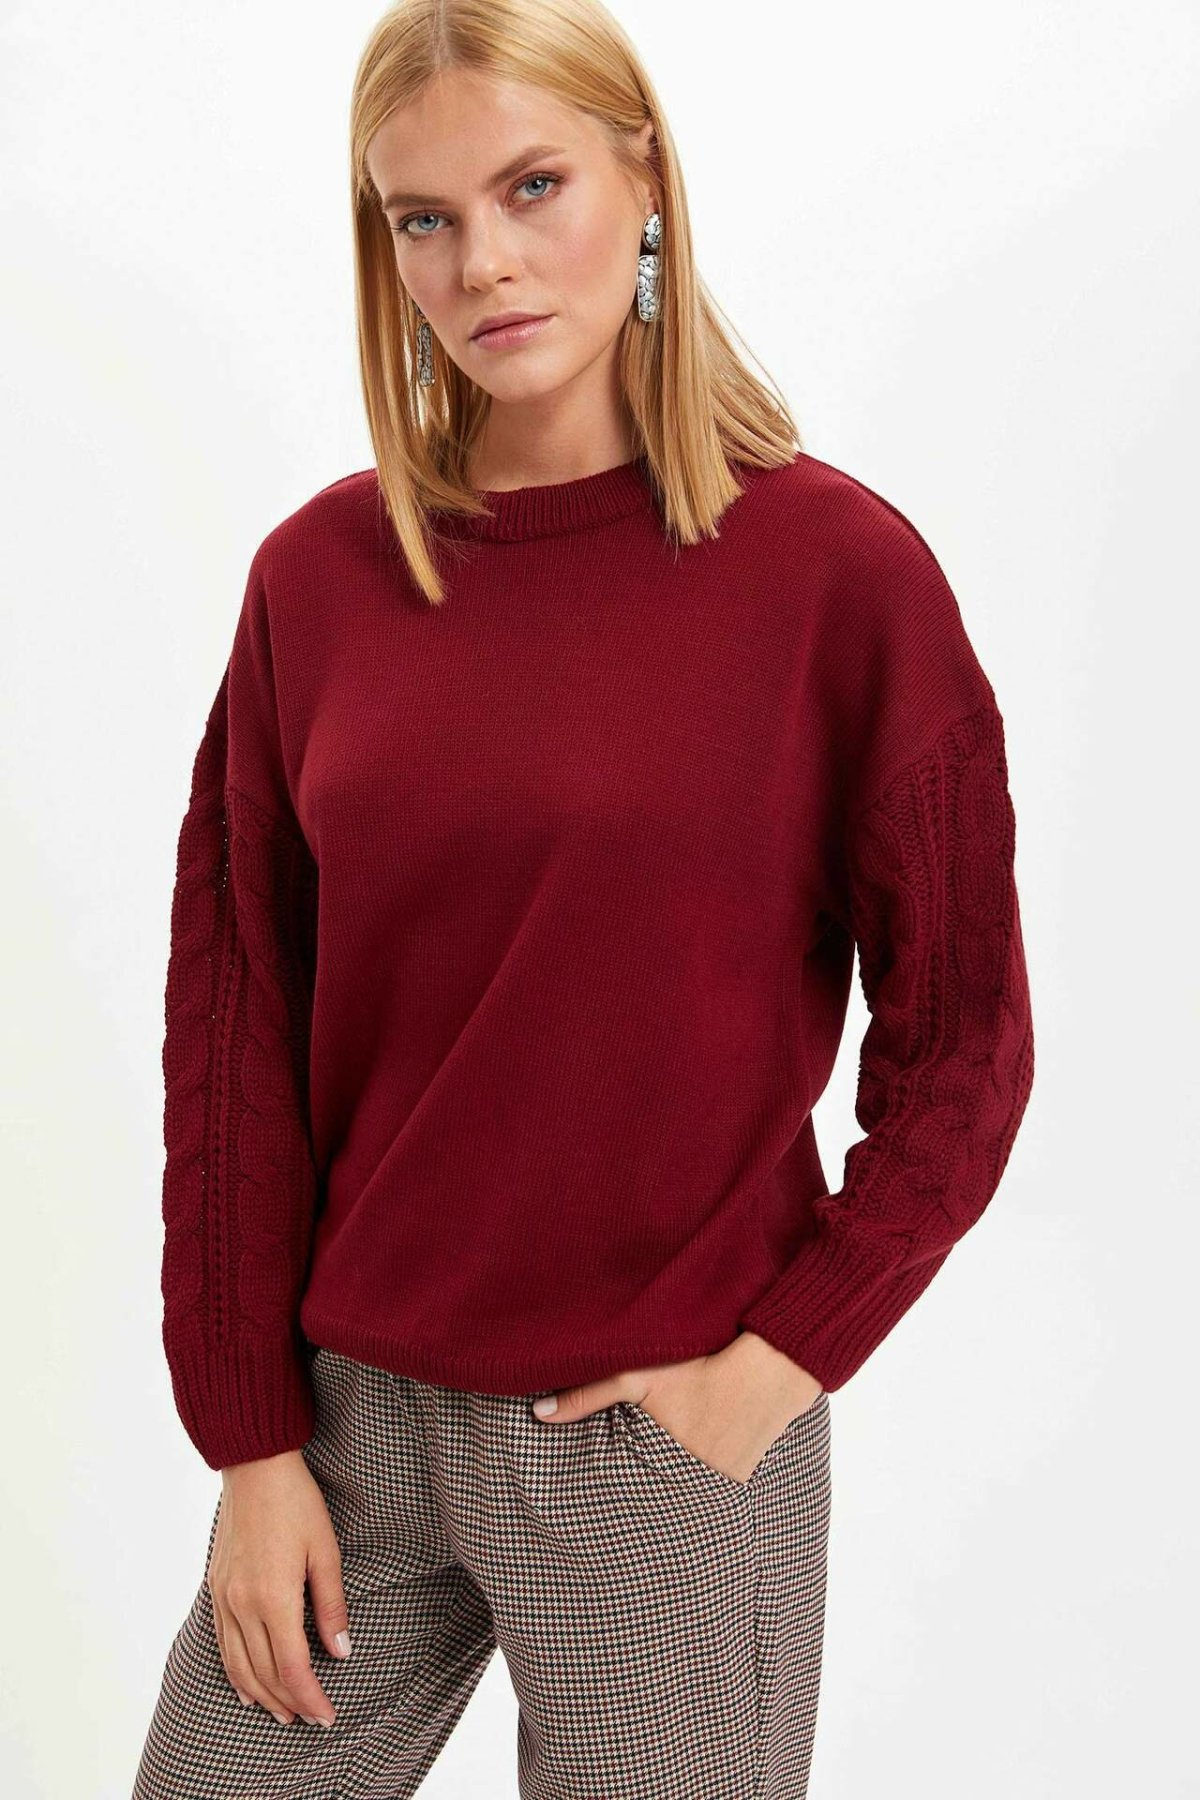 DeFacto Woman Autumn Winter Casual Wine Red Color Pullover Women Long Sleeve Loose Tops Hoodies New Arrival-L3452AZ19WN